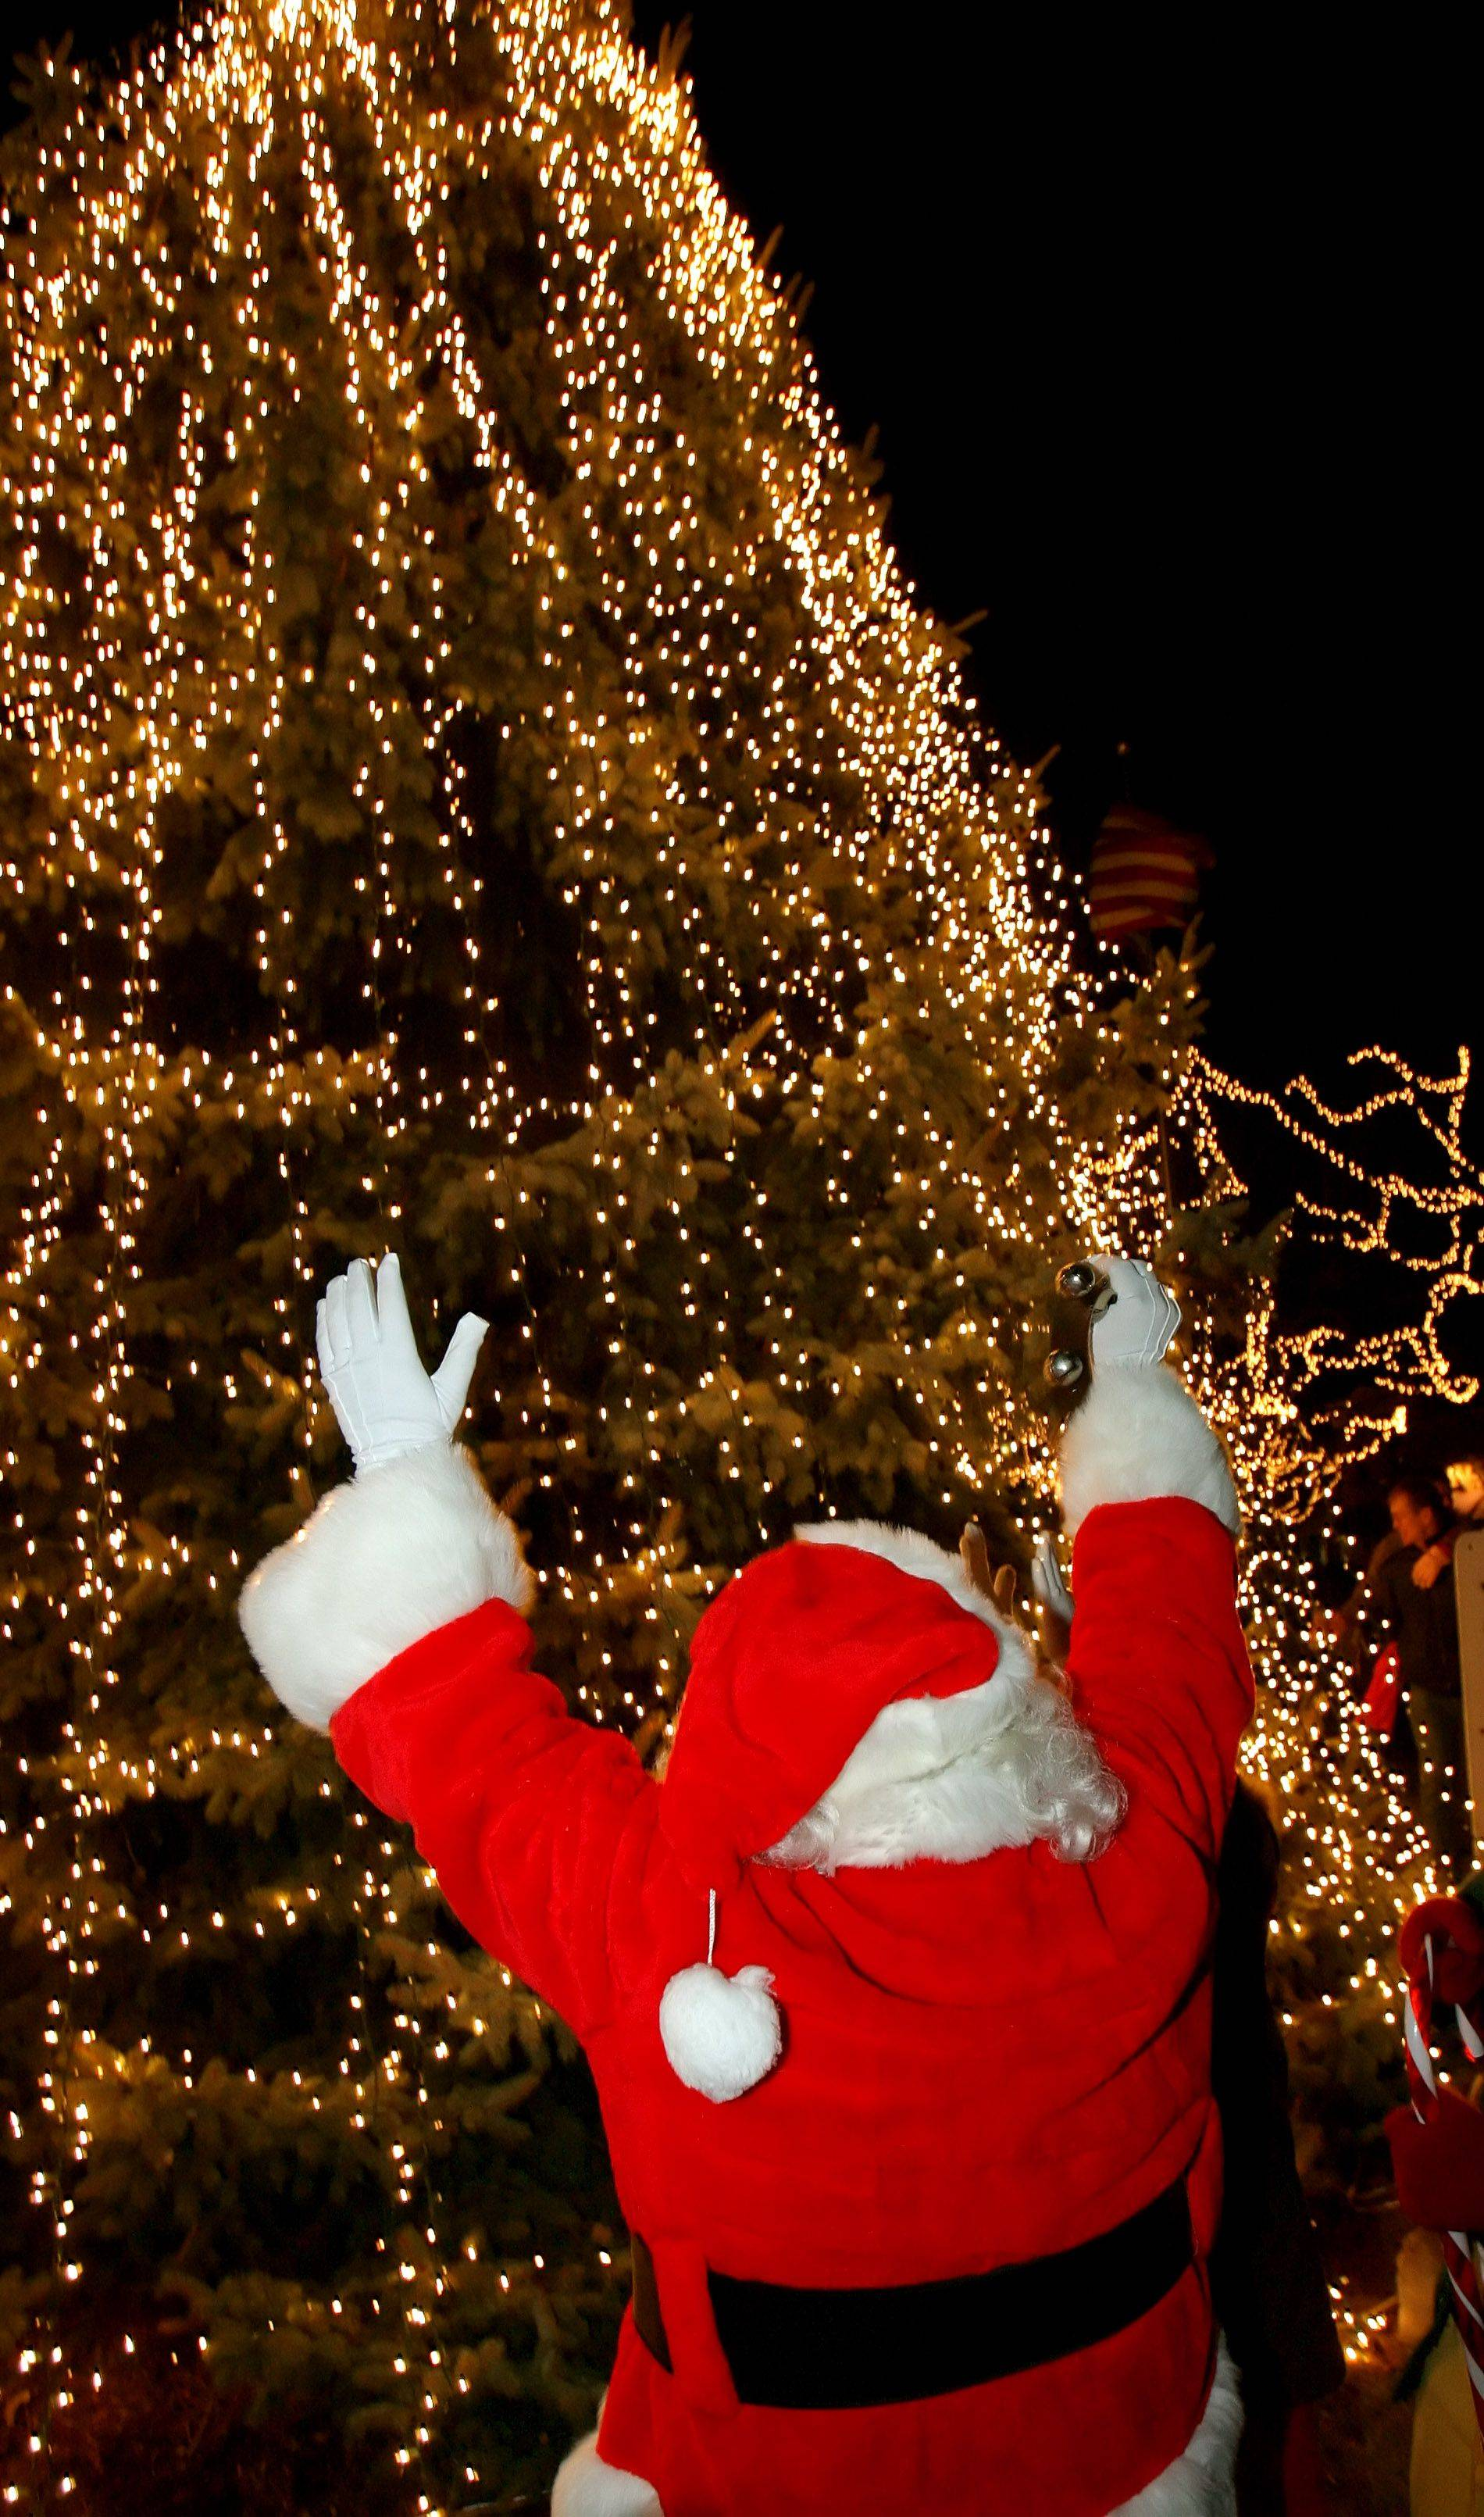 Santa raises his arms as the tree is lit at Seymour Ave. and Center St. in downtown Grayslake during the official tree lighting ceremony Friday night.